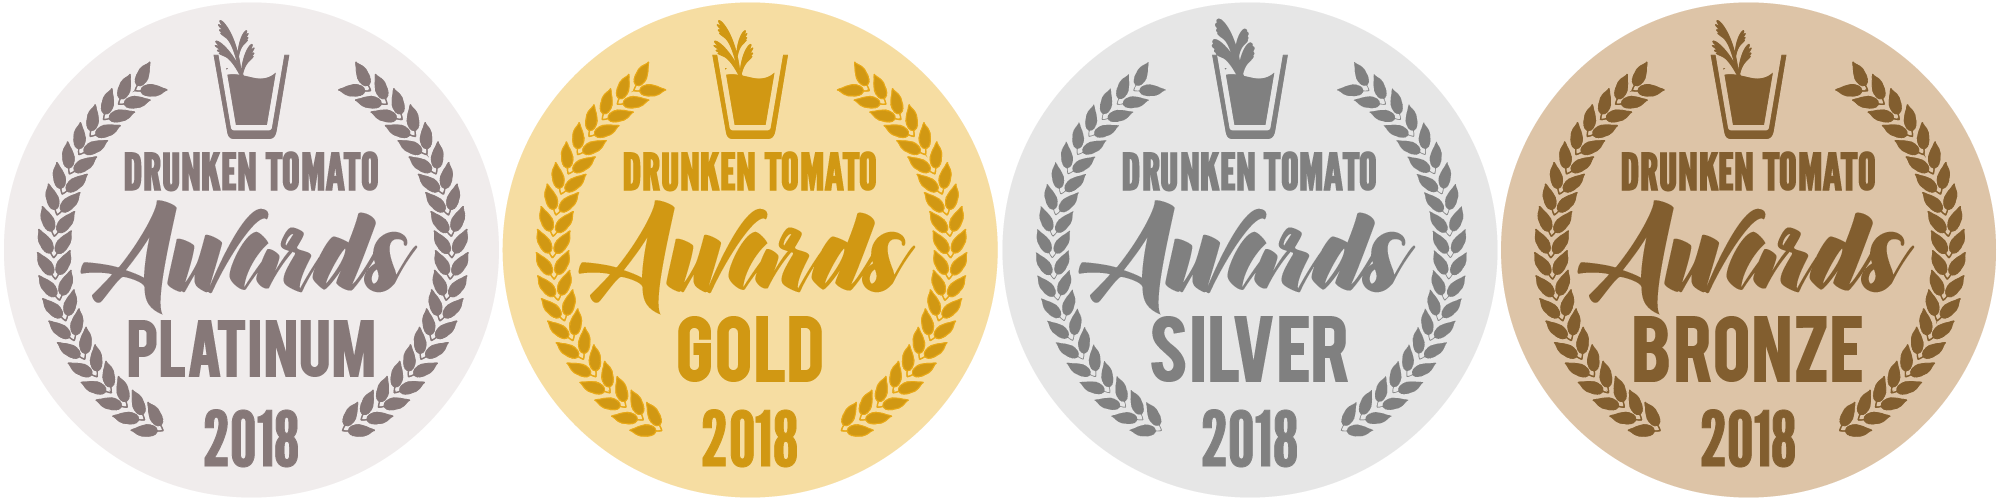 Drunken Tomato Awards 2018 Medals.png